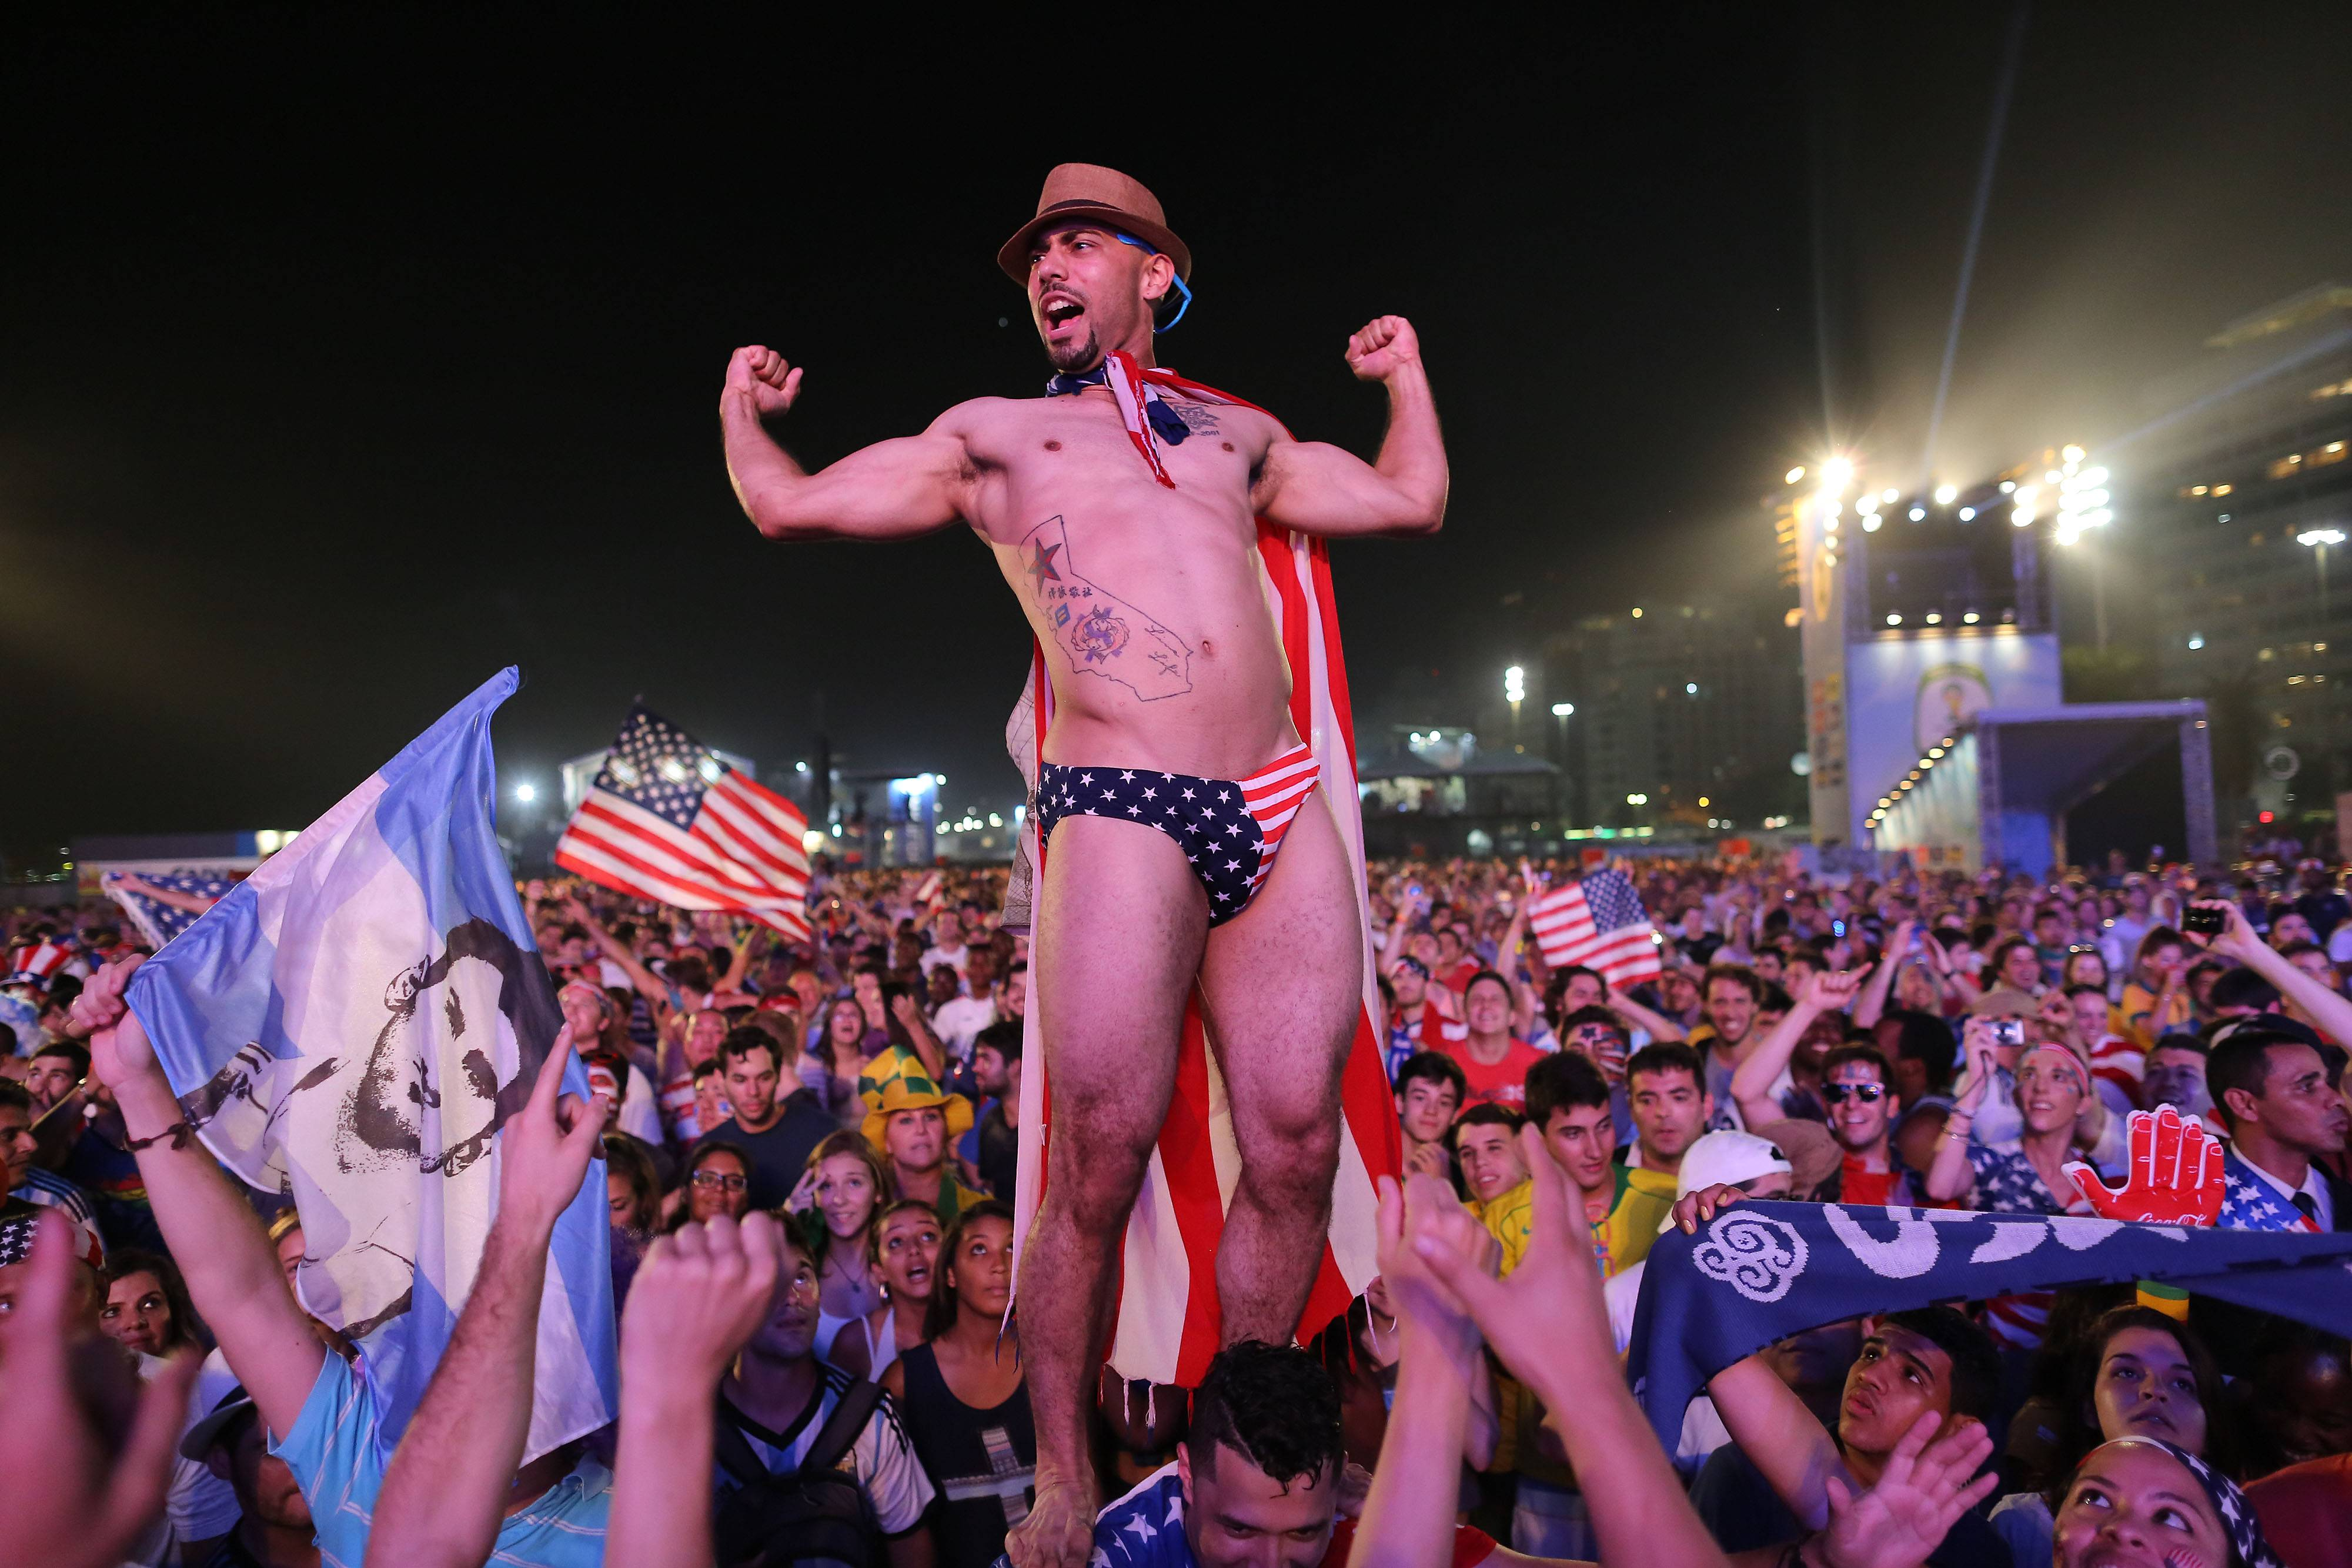 "Associated Press U.S. soccer fans cheer minutes before a live broadcast of the soccer World Cup match between USA and Ghana, during a music concert inside the FIFA Fan Fest area on Copacabana beach, Rio de Janeiro, Brazil. With ""I believe that we will win!"" American soccer fans finally have a World Cup chant that doesn't just involve shouting their country's name."